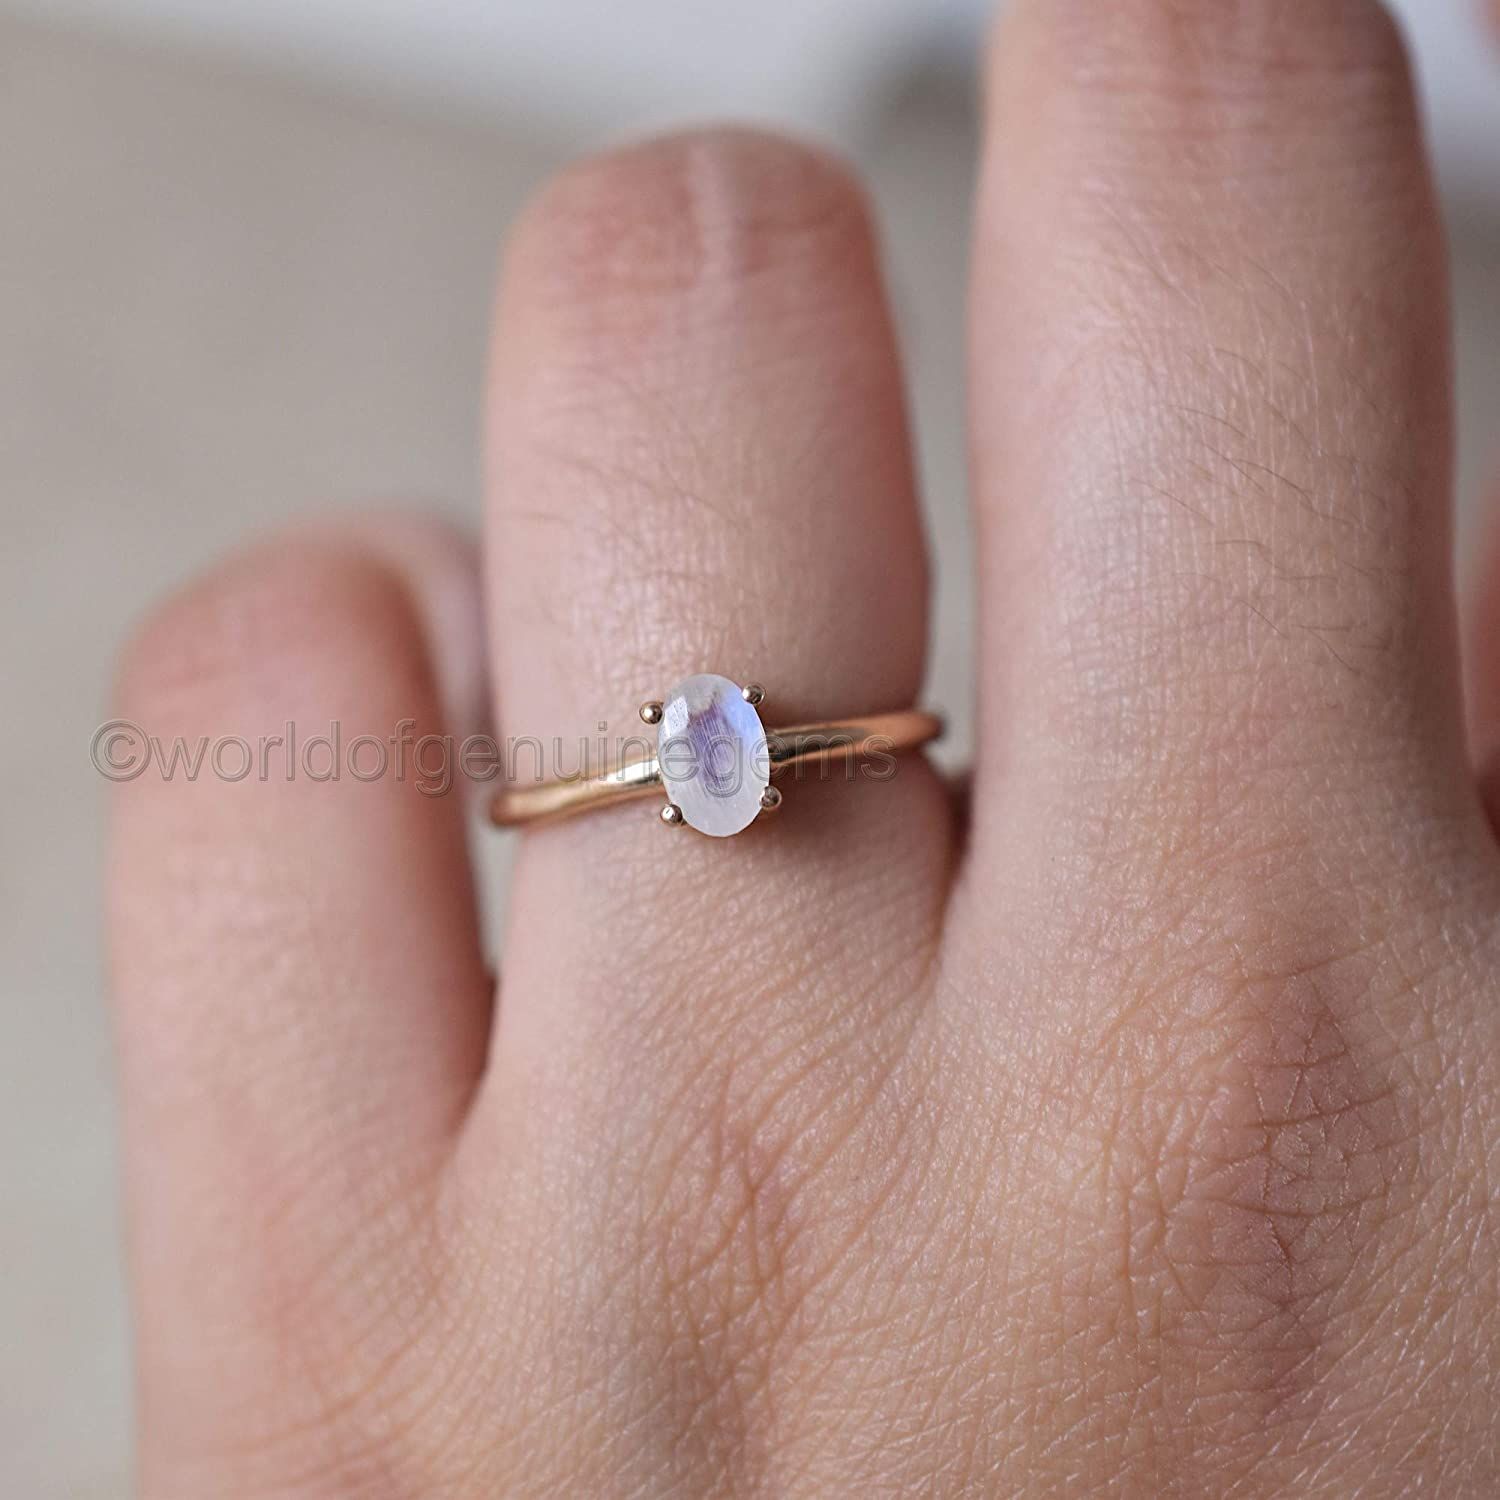 37e5bcc23 rainbow moonstone ring, rose gold plating ring, stacking ring, 925 sterling  silver, dainty ring, promise ring, girls wear ring, purpose ring, ...